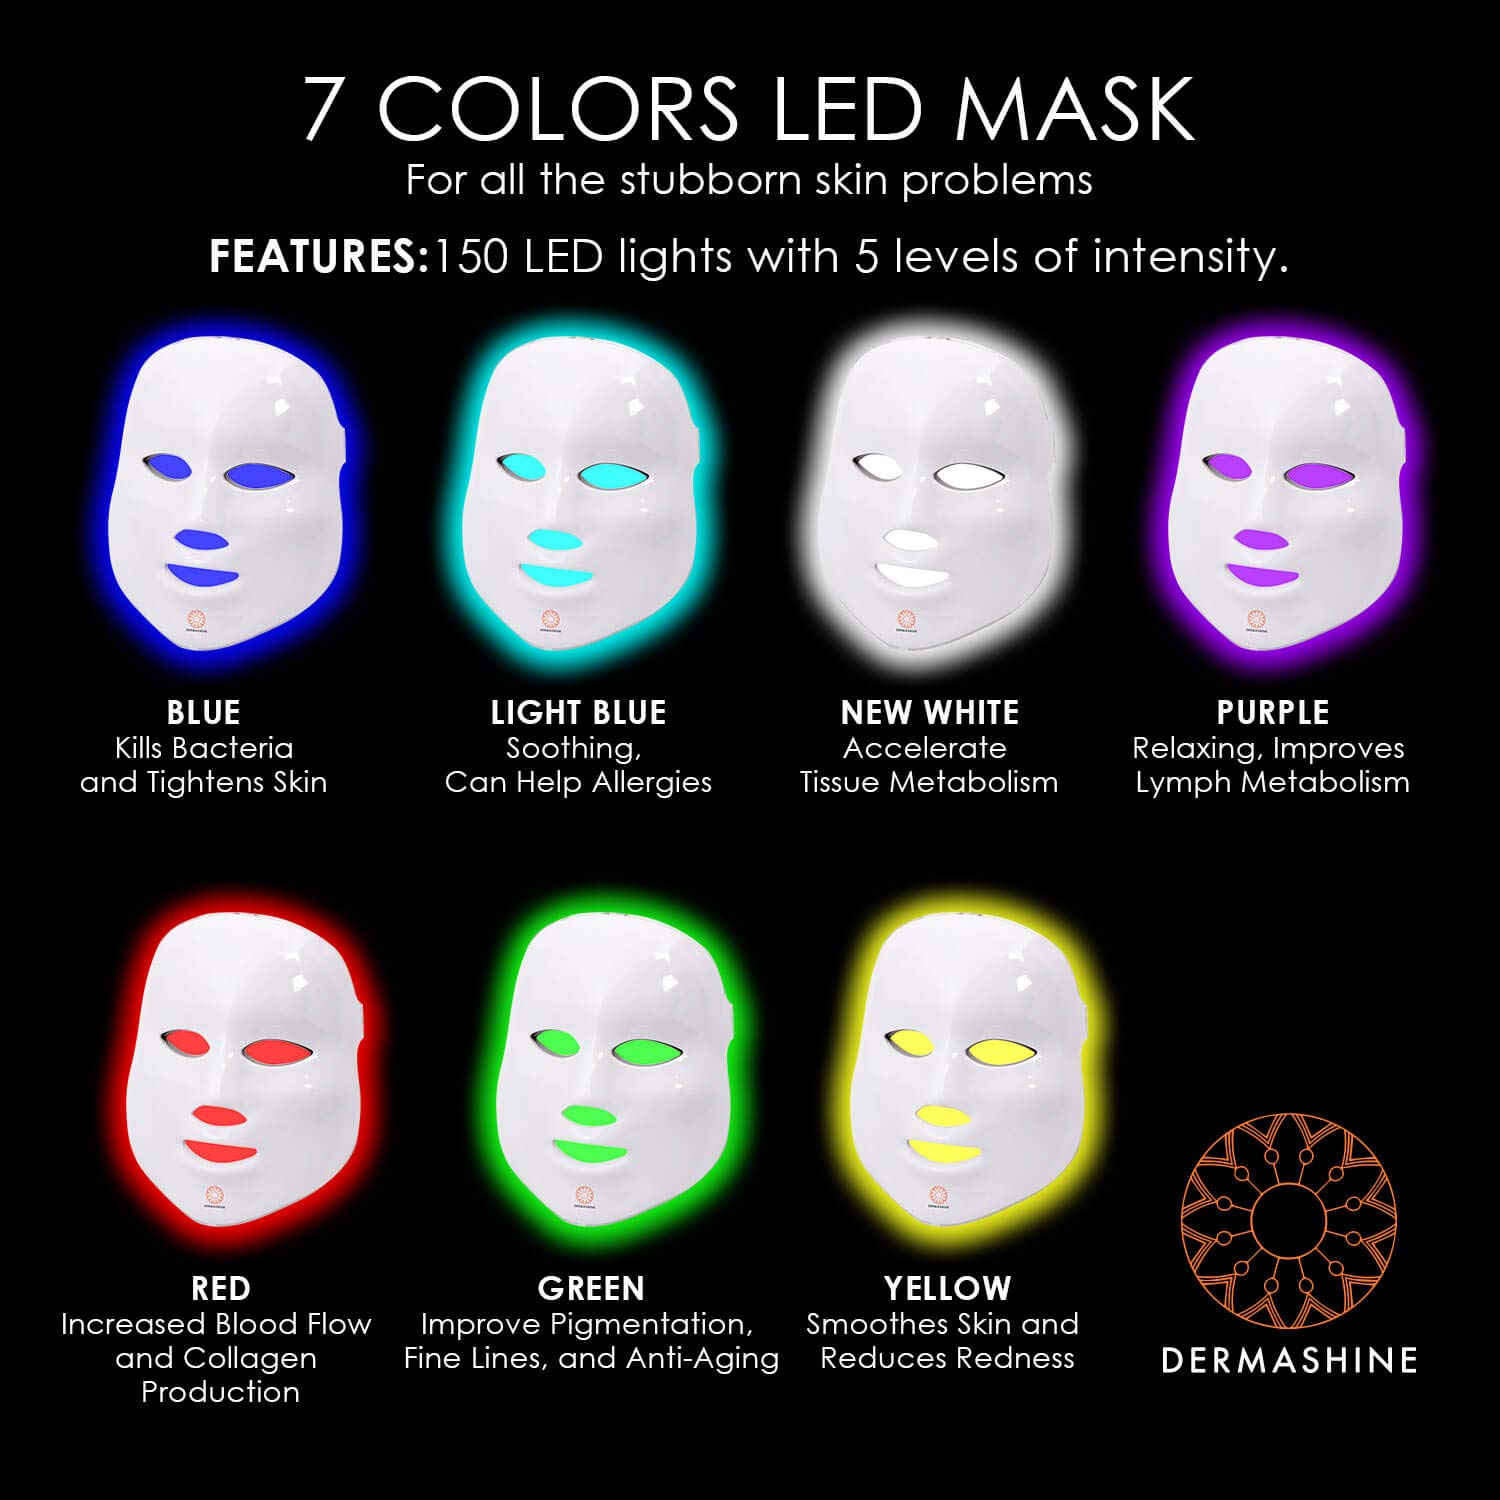 Dermashine Pro 7 Color Led Mask For Face Photon Red Light For Healthy Skin Rejuvenation Therapy Collagen Anti Aging Wrinkles Scarring Korean